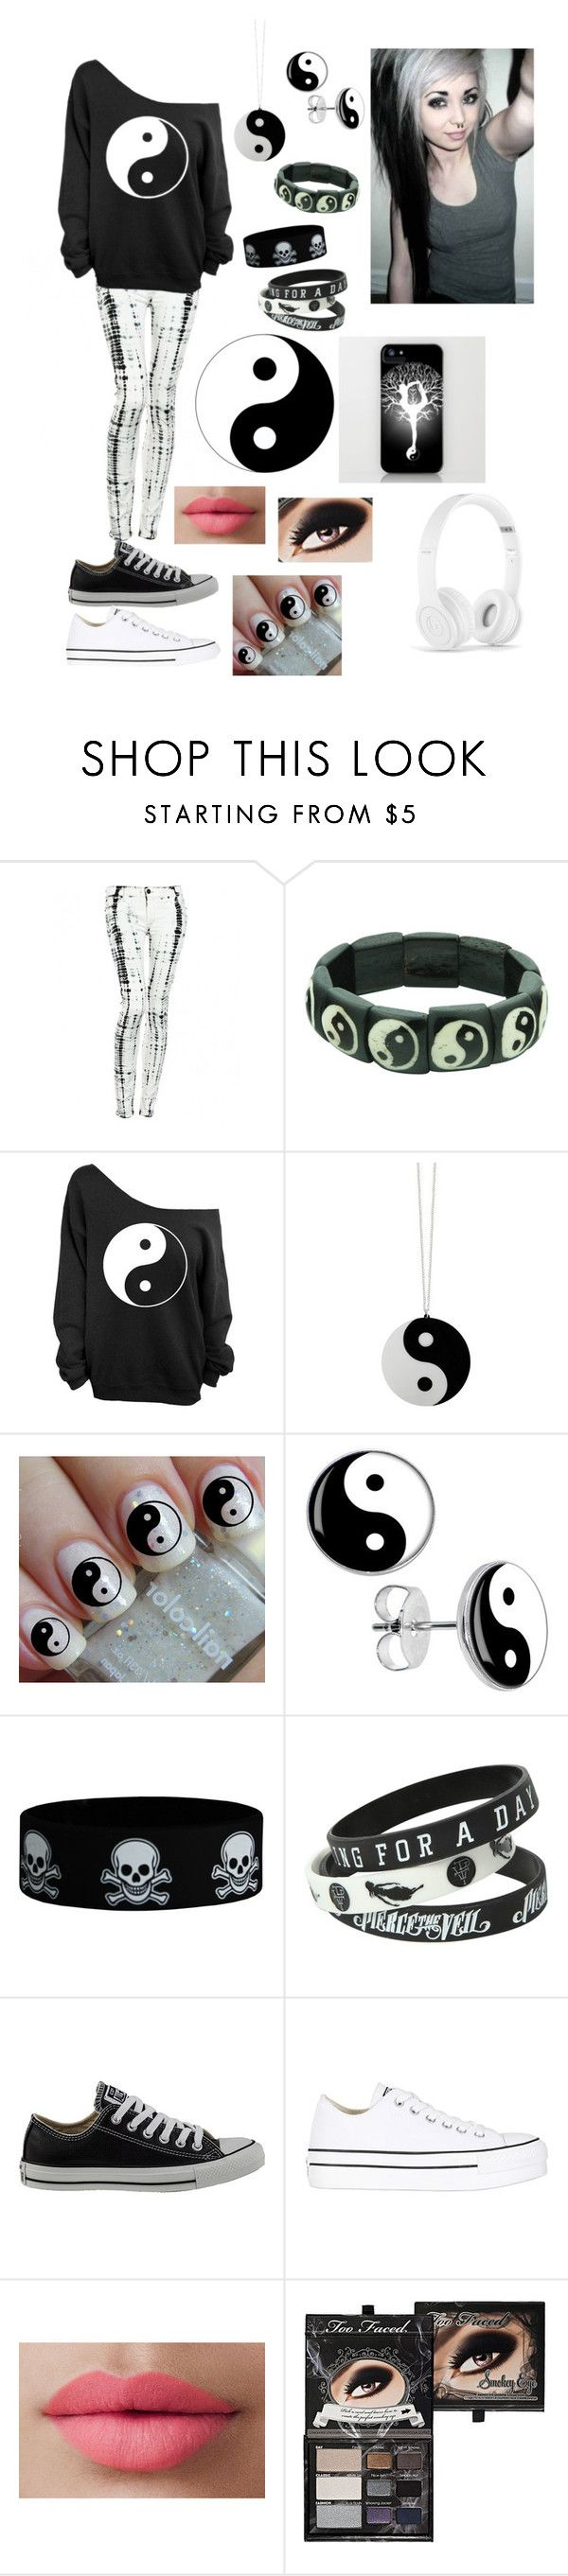 """Yin yang"" by skygrace02 ❤ liked on Polyvore featuring Hudson Jeans, Converse, LORAC, Too Faced Cosmetics, Beats by Dr. Dre, white, black, emo and yinyang"